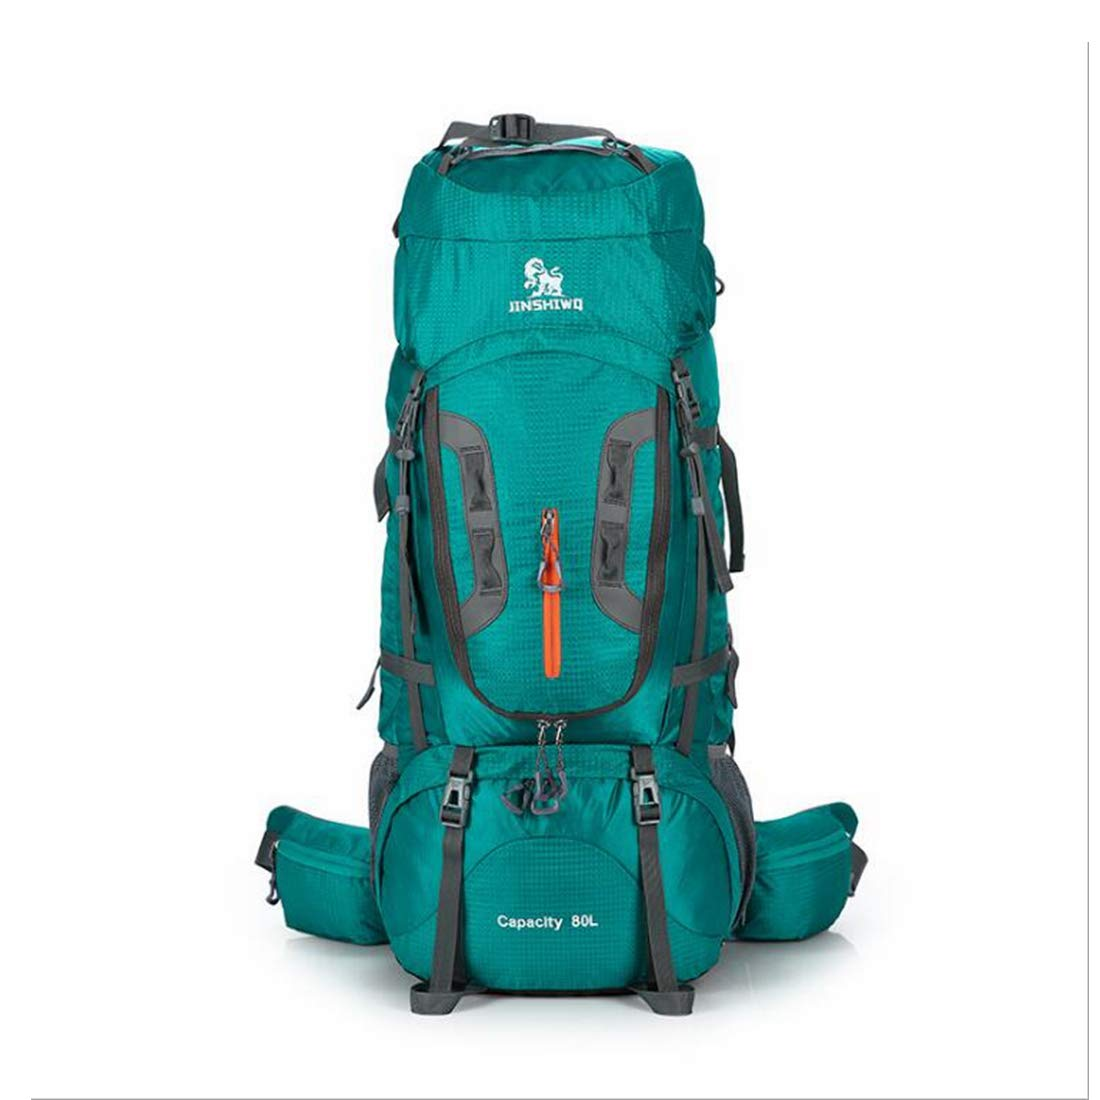 CTARCROW Hiking Backpack Travel Daypack Waterproof with Rain Cover for Climbing Camping Color : Lake Blue